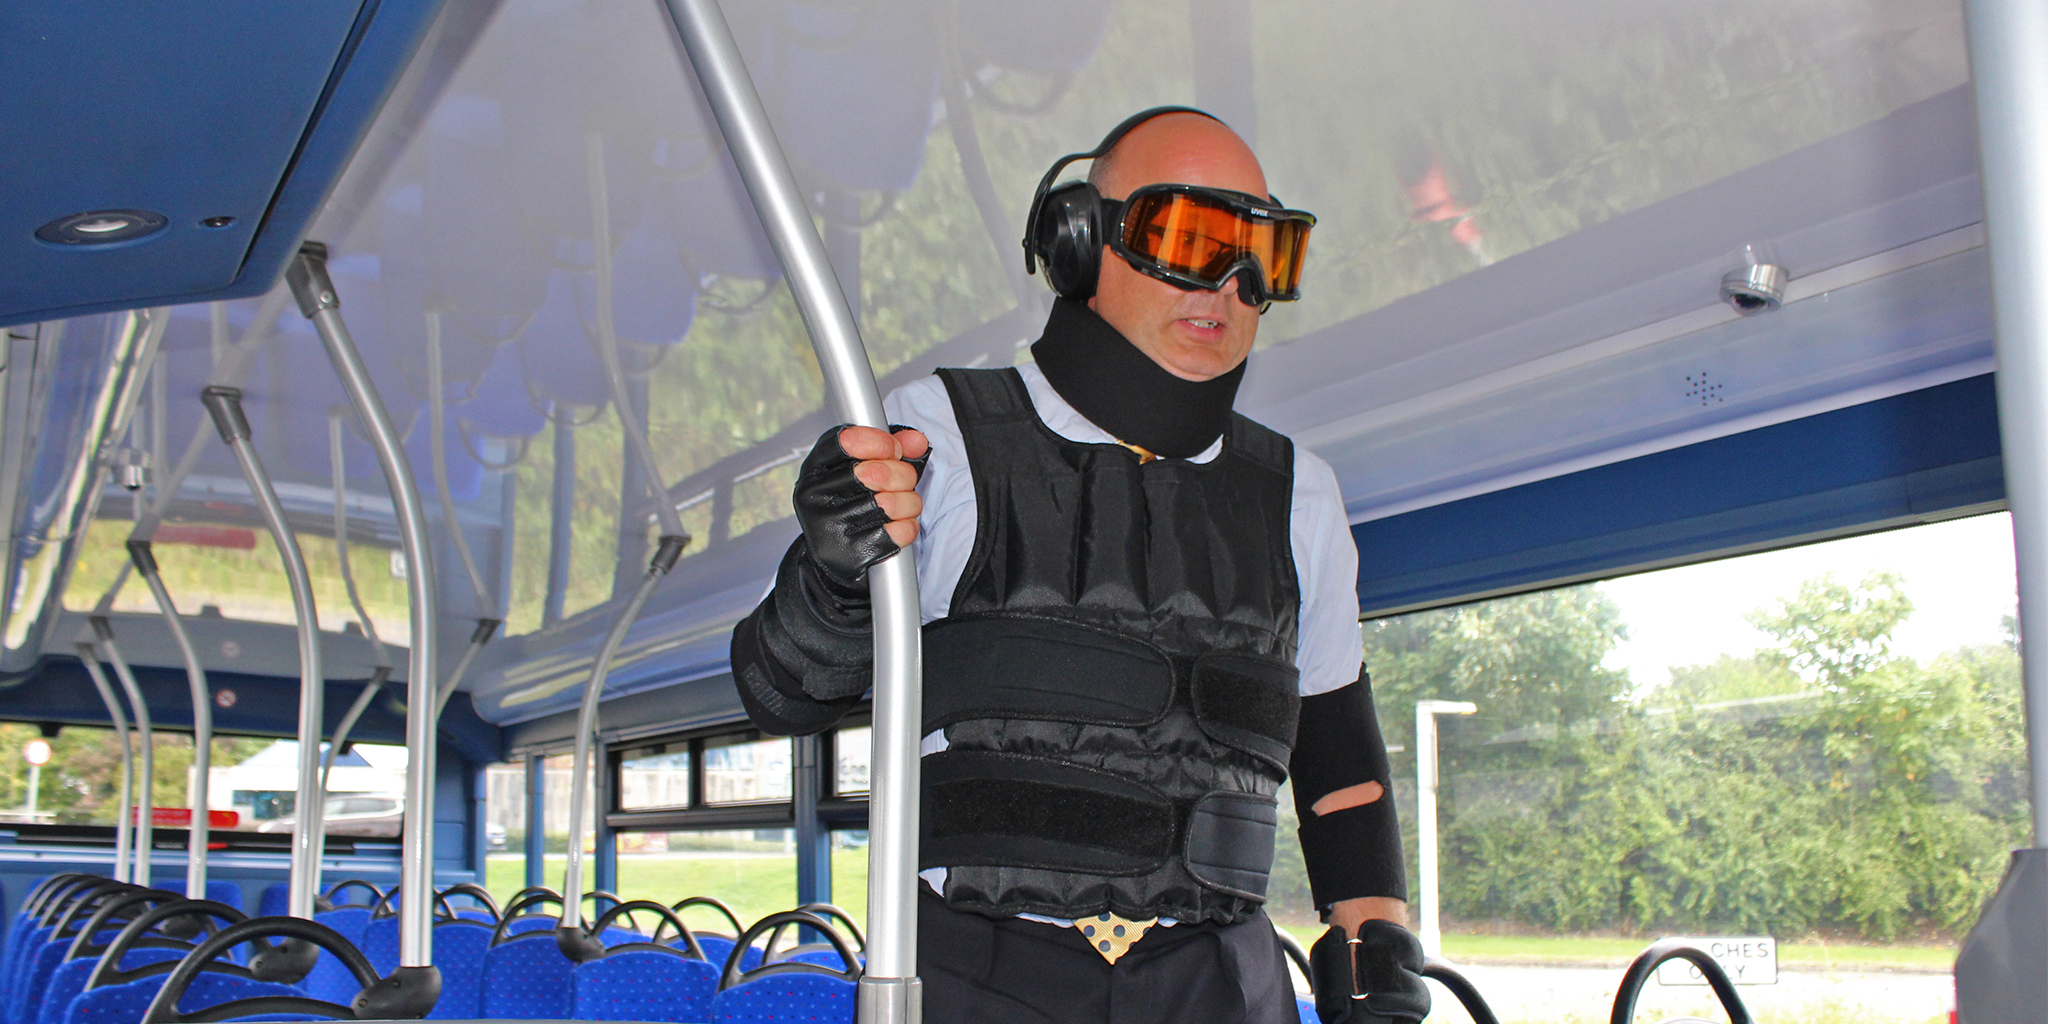 A man wearing ear defenders and protective eye and body wear